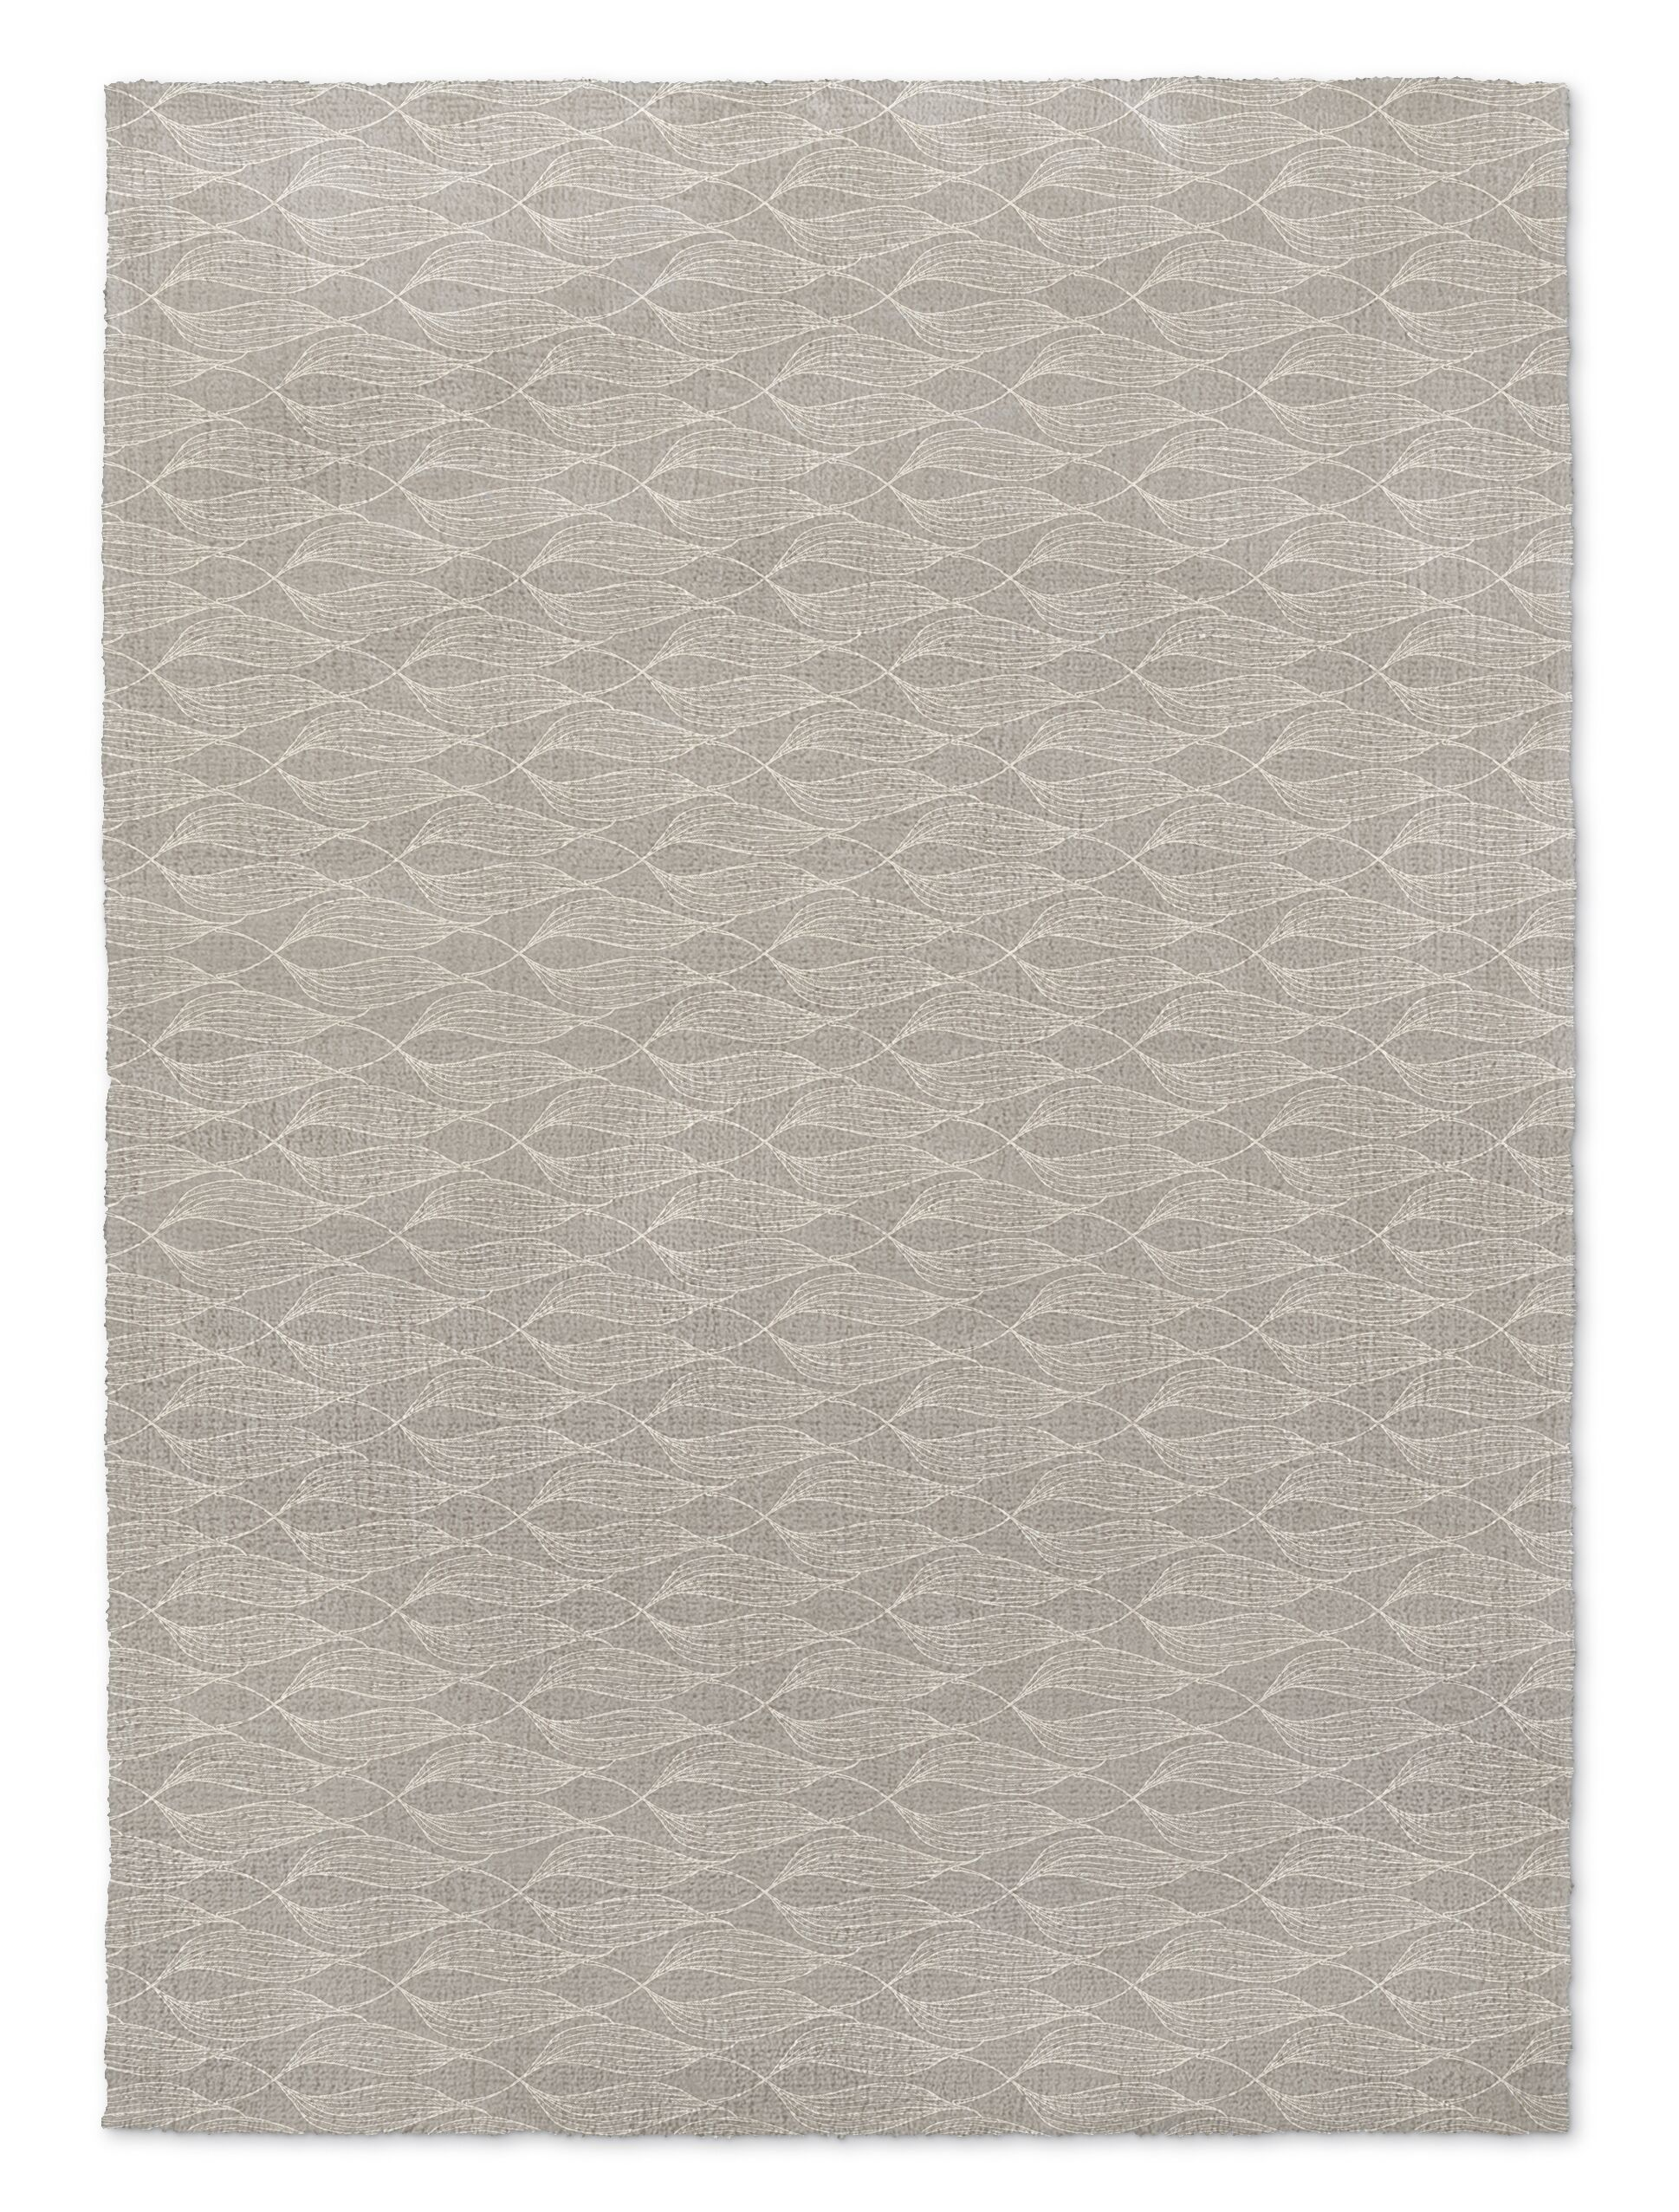 Groce Light Gray Area Rug Rug Size: Rectangle 8' x 10'